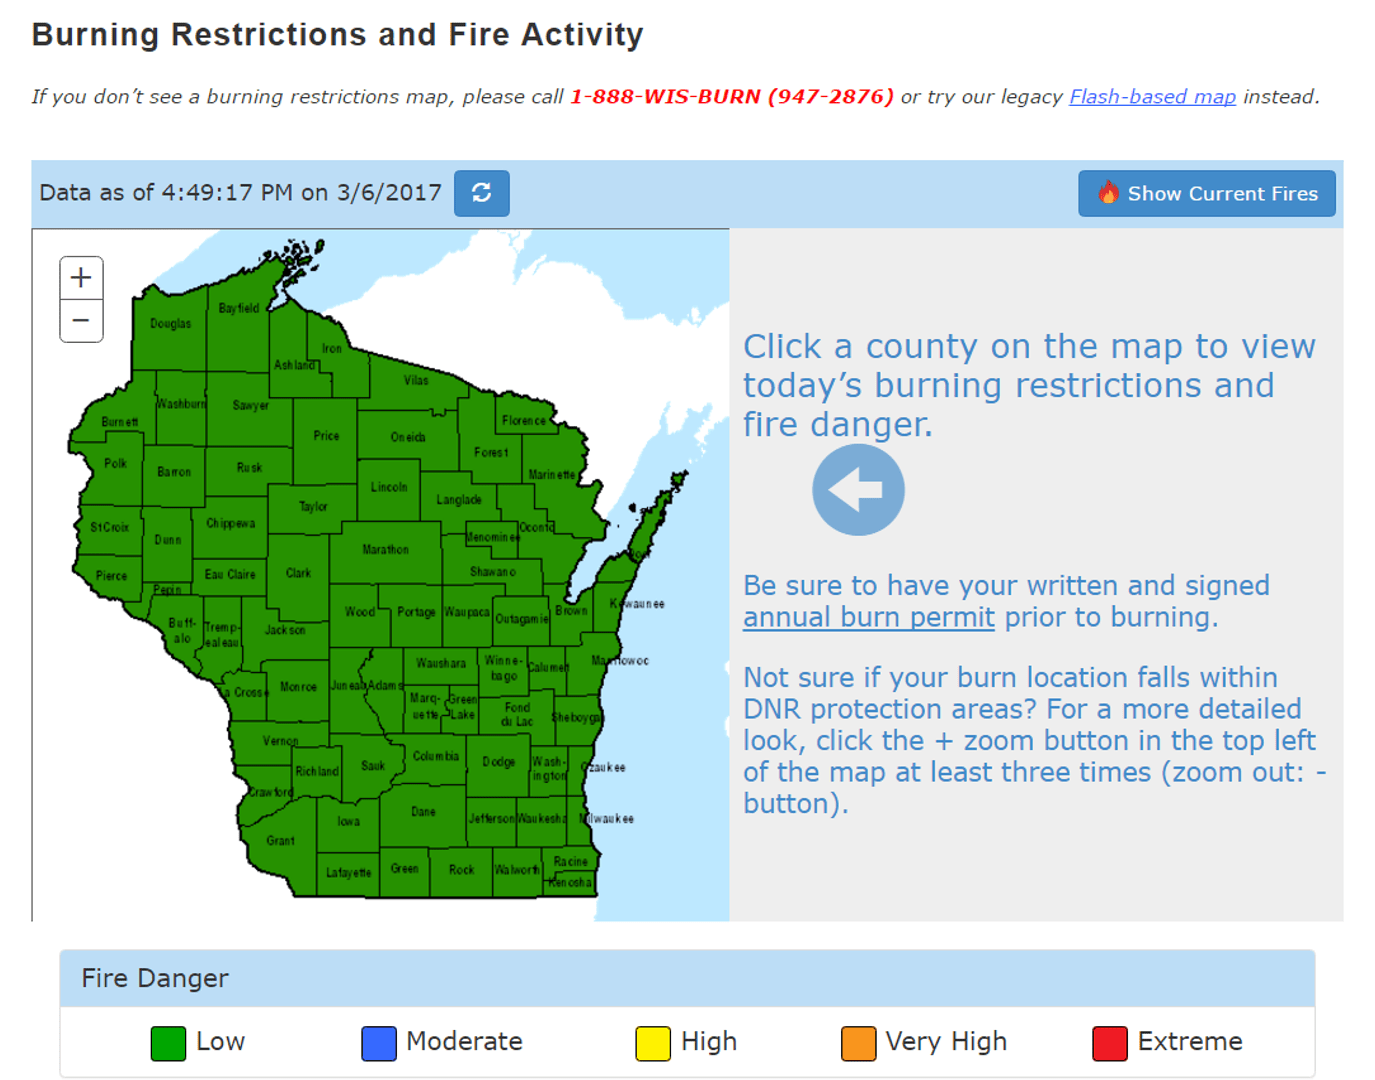 Interactive map funded by State and Private Forestry, USDA Forest Service. Users click on their county to view the day's burning restrictions and fire danger.